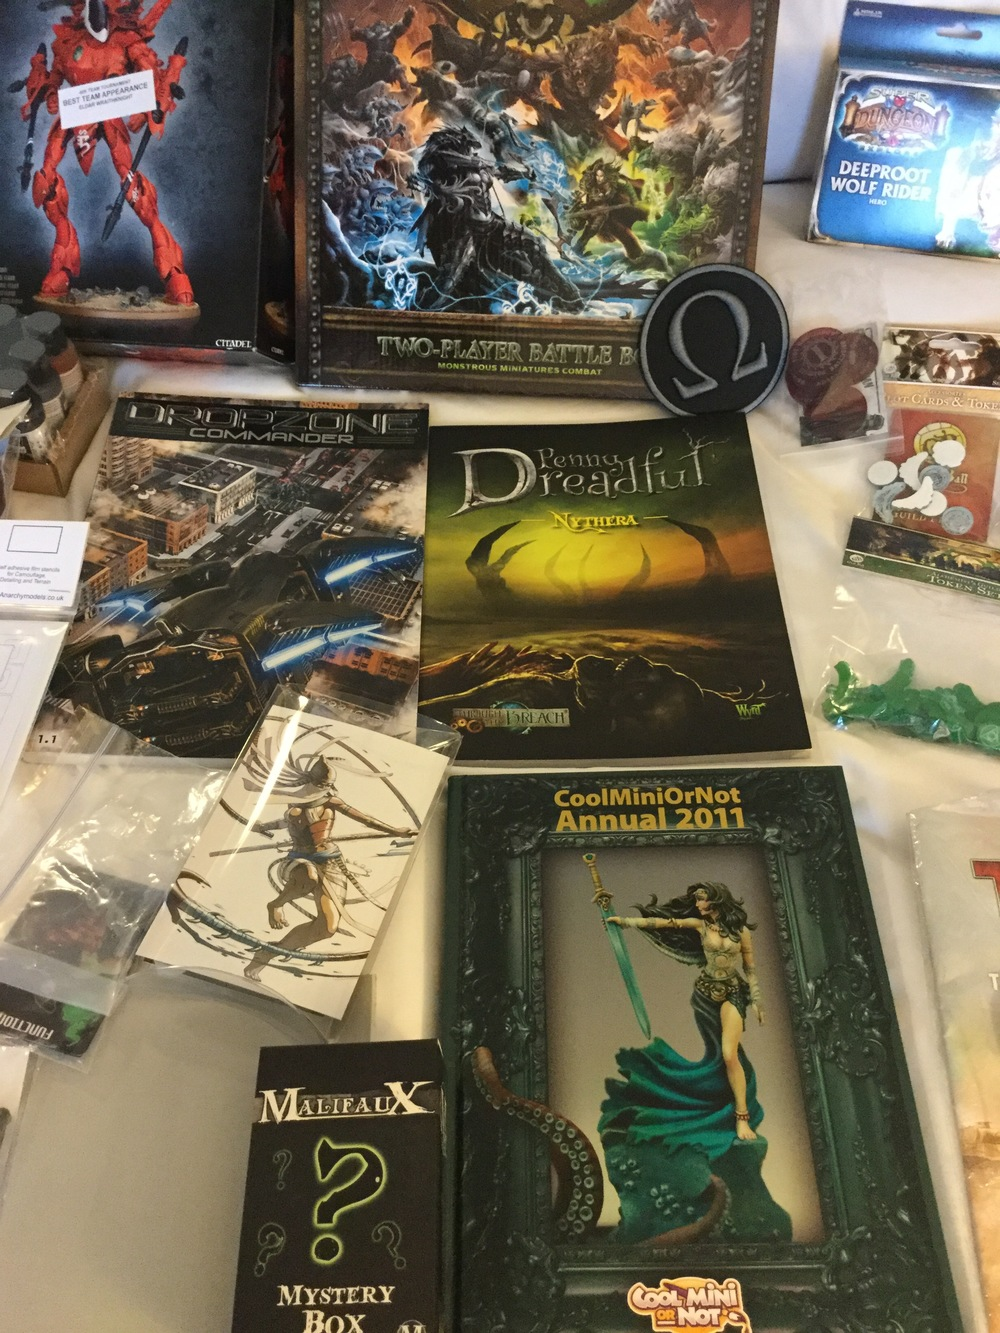 Some of what was in the swag bag. Minus the Super Dungeon Explore, Guild Ball and WraithKnight.